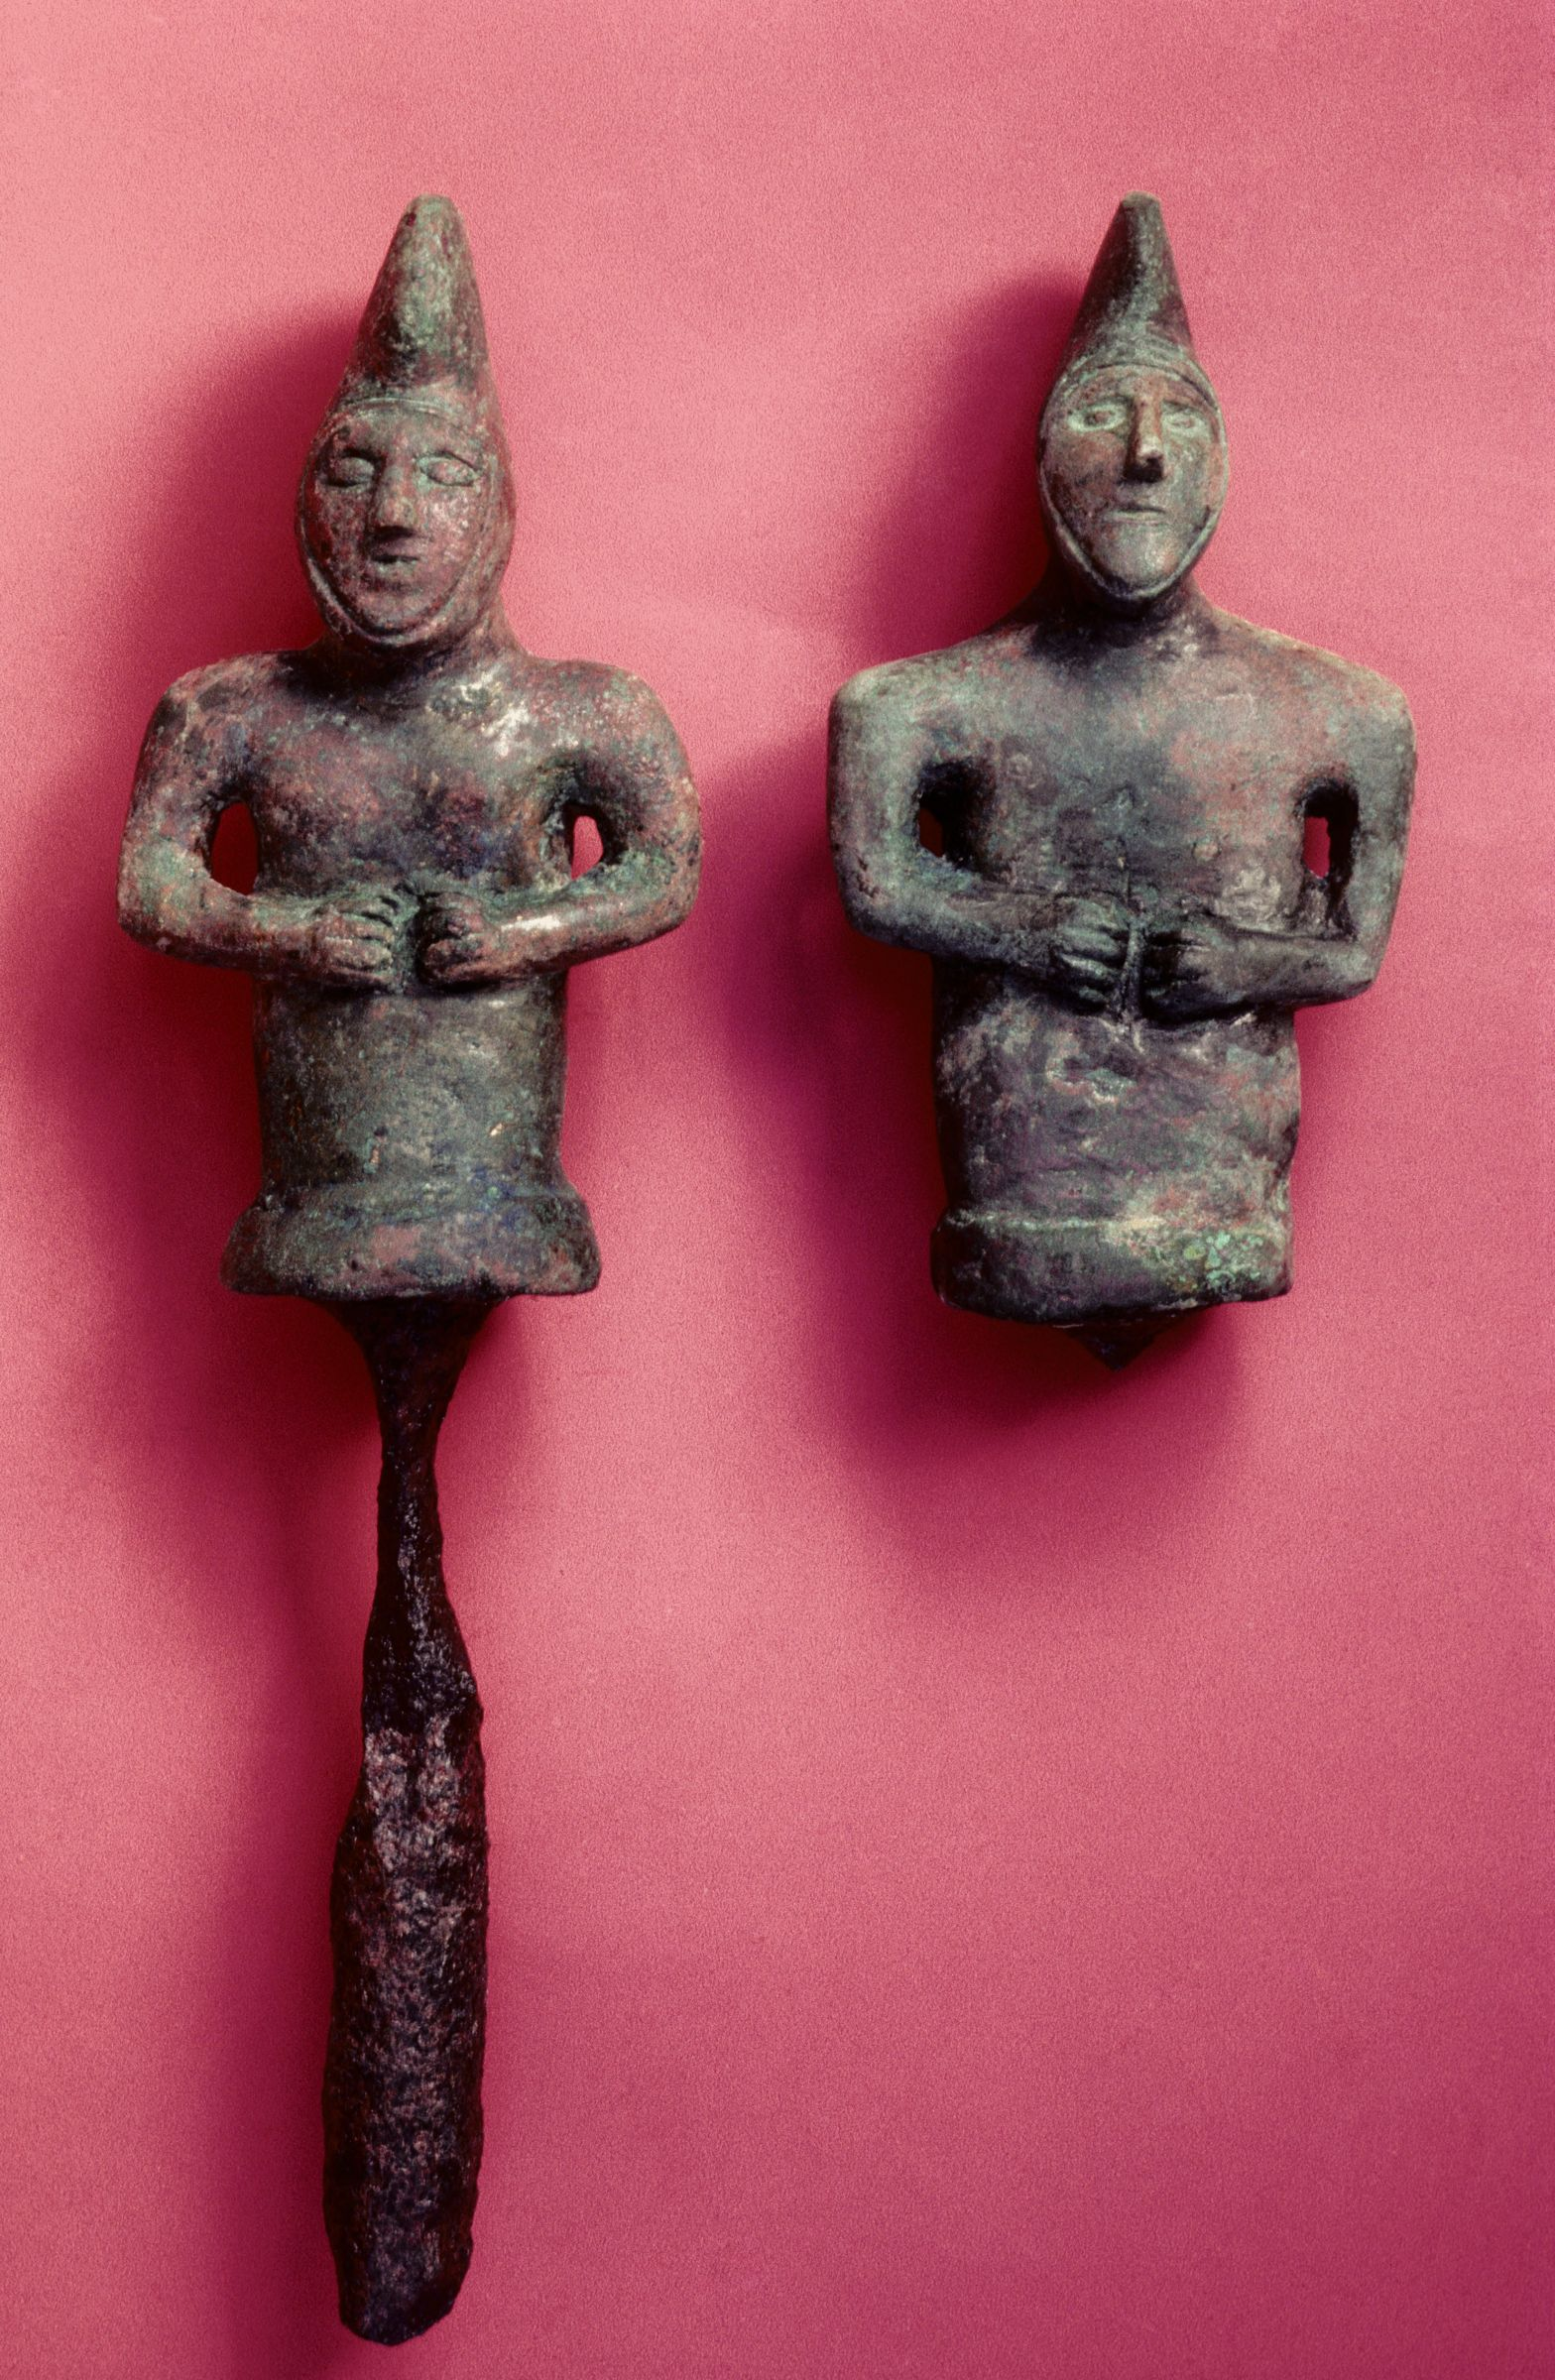 Two figural linchpins